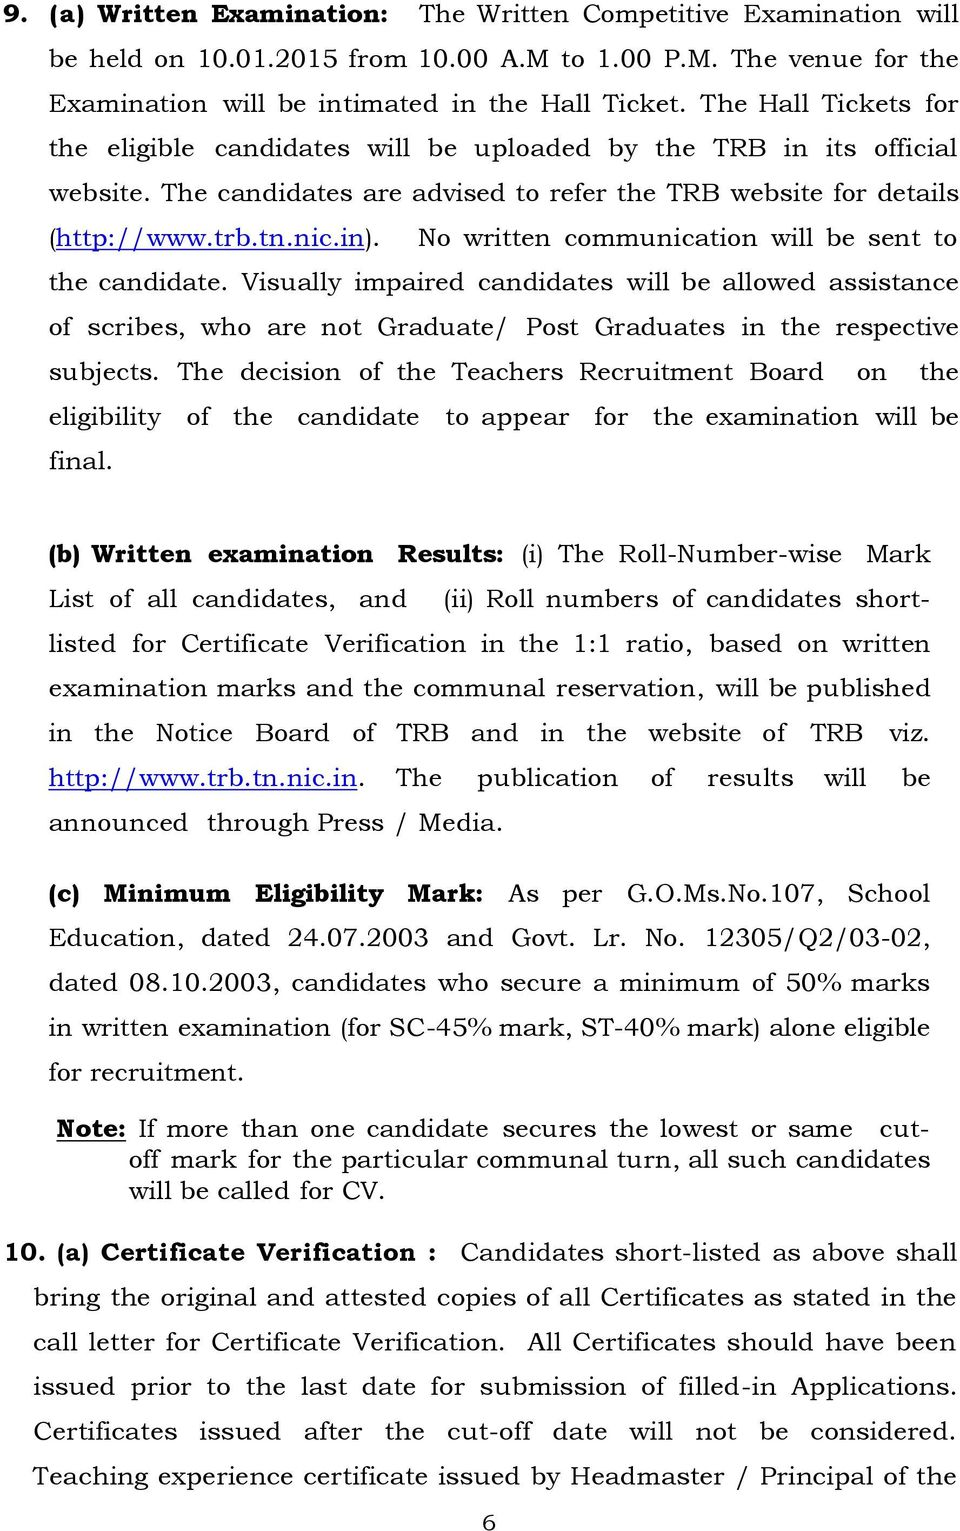 No written communication will be sent to the candidate. Visually impaired candidates will be allowed assistance of scribes, who are not Graduate/ Post Graduates in the respective subjects.